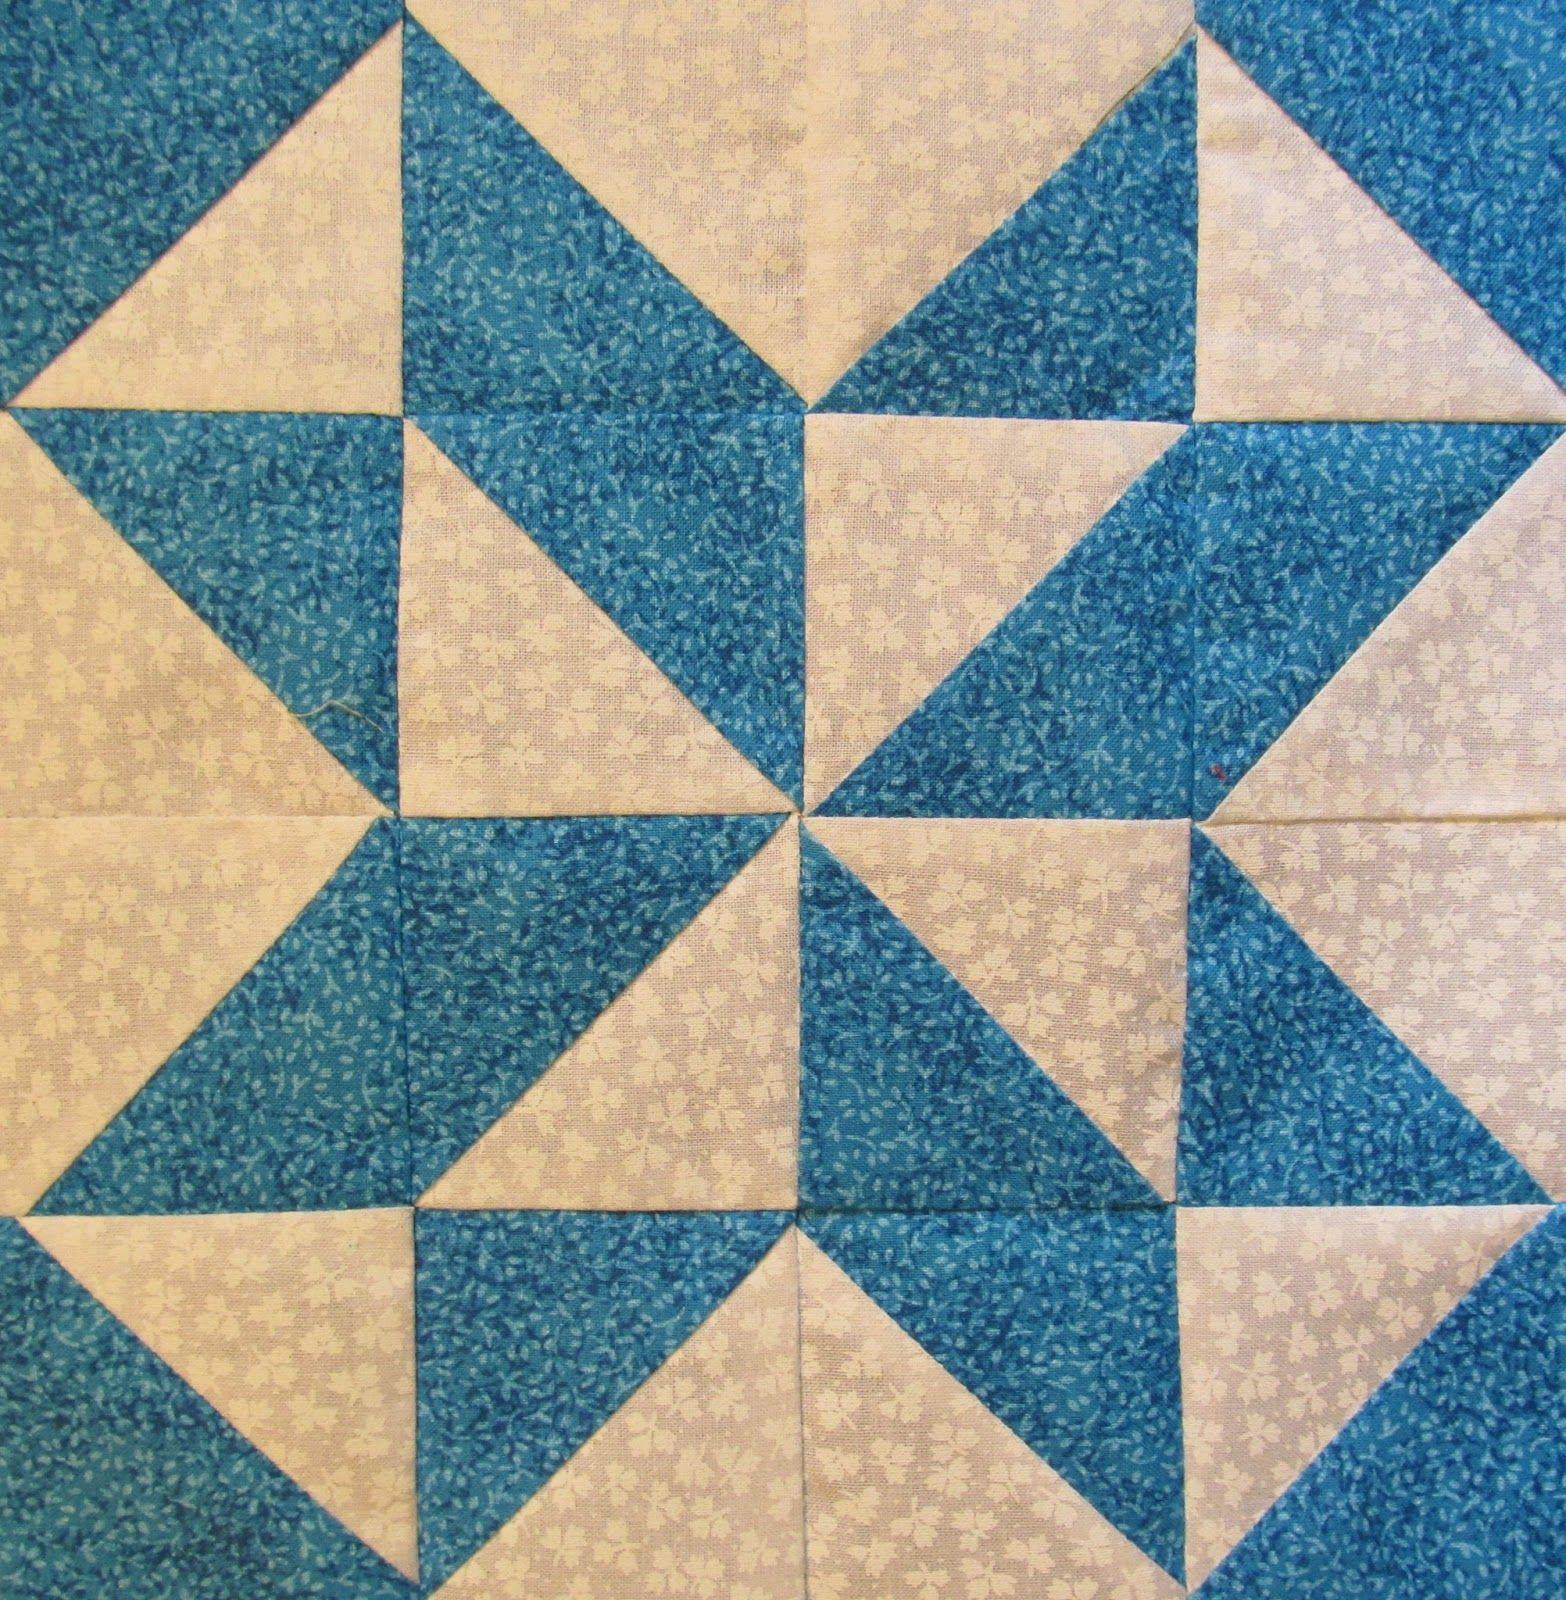 Quilt Patterns Using Squares And Triangles : star quilt pattern using triangles Quilts & things Pinterest Star quilt patterns, Star ...